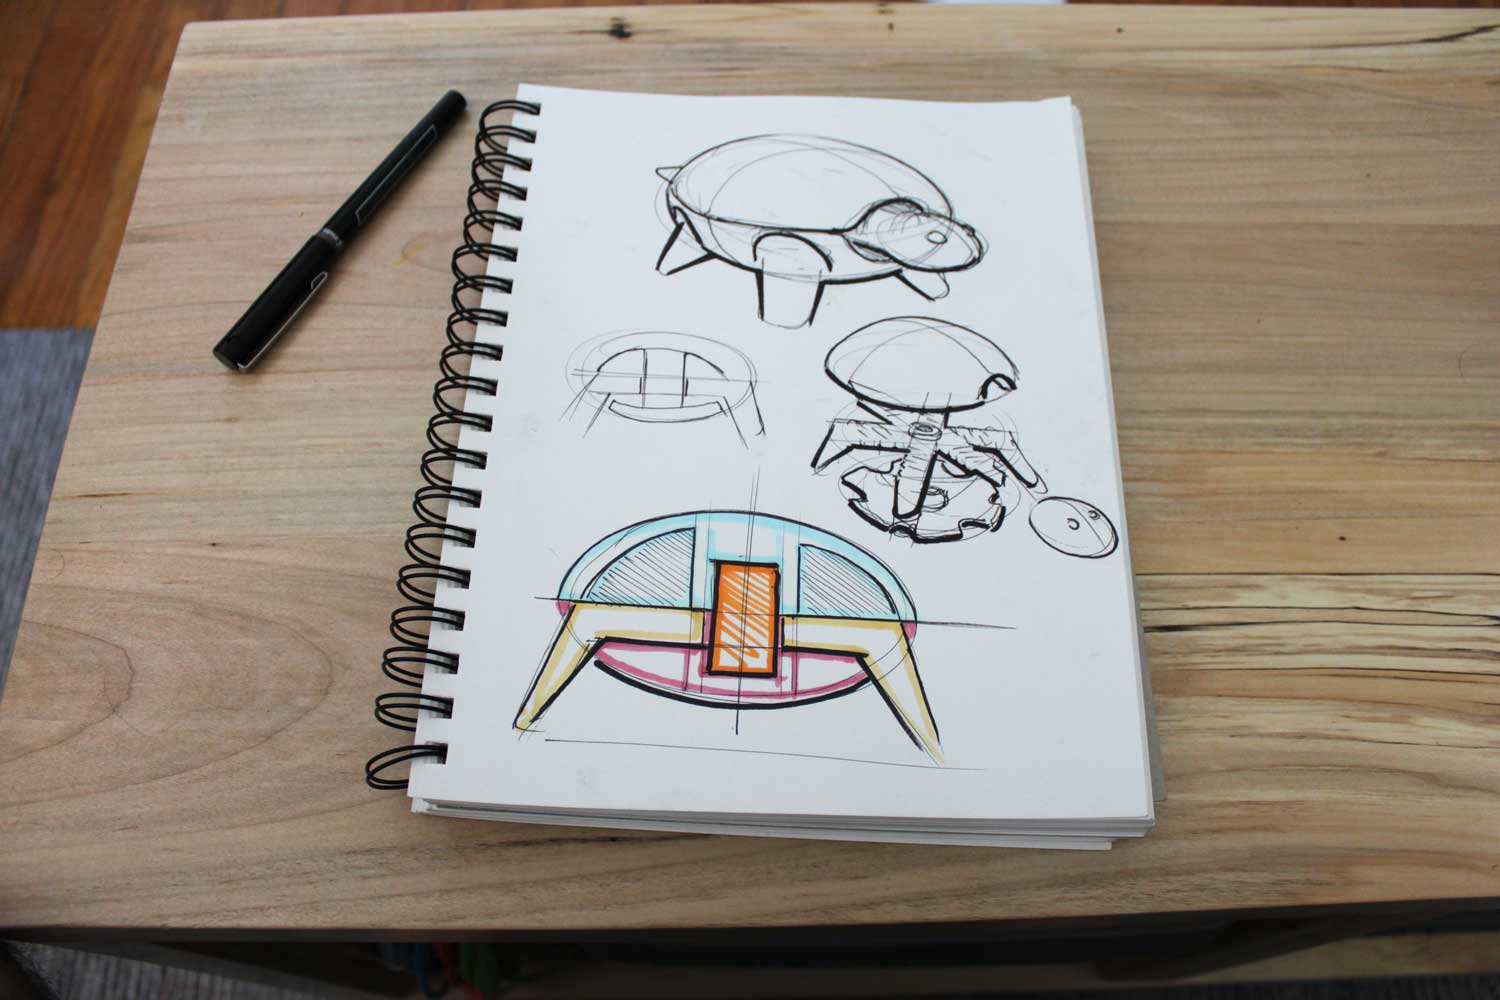 02 industrial design concept sketch 3d-printed-squishy-turtle-nature-animal-toy-kids-project-design-colorful